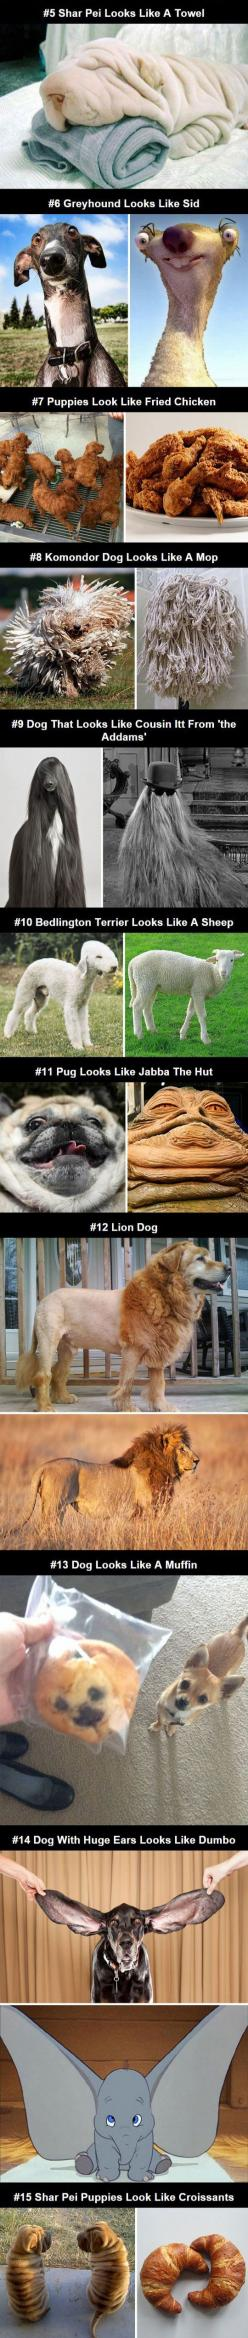 Dogs That Look Like Other Things: Look Alike, Funny Animals, Same Animal, Funny Dogs, Puppy Meme, Cooking Grease, Funny Dog Meme, Fried Chicken